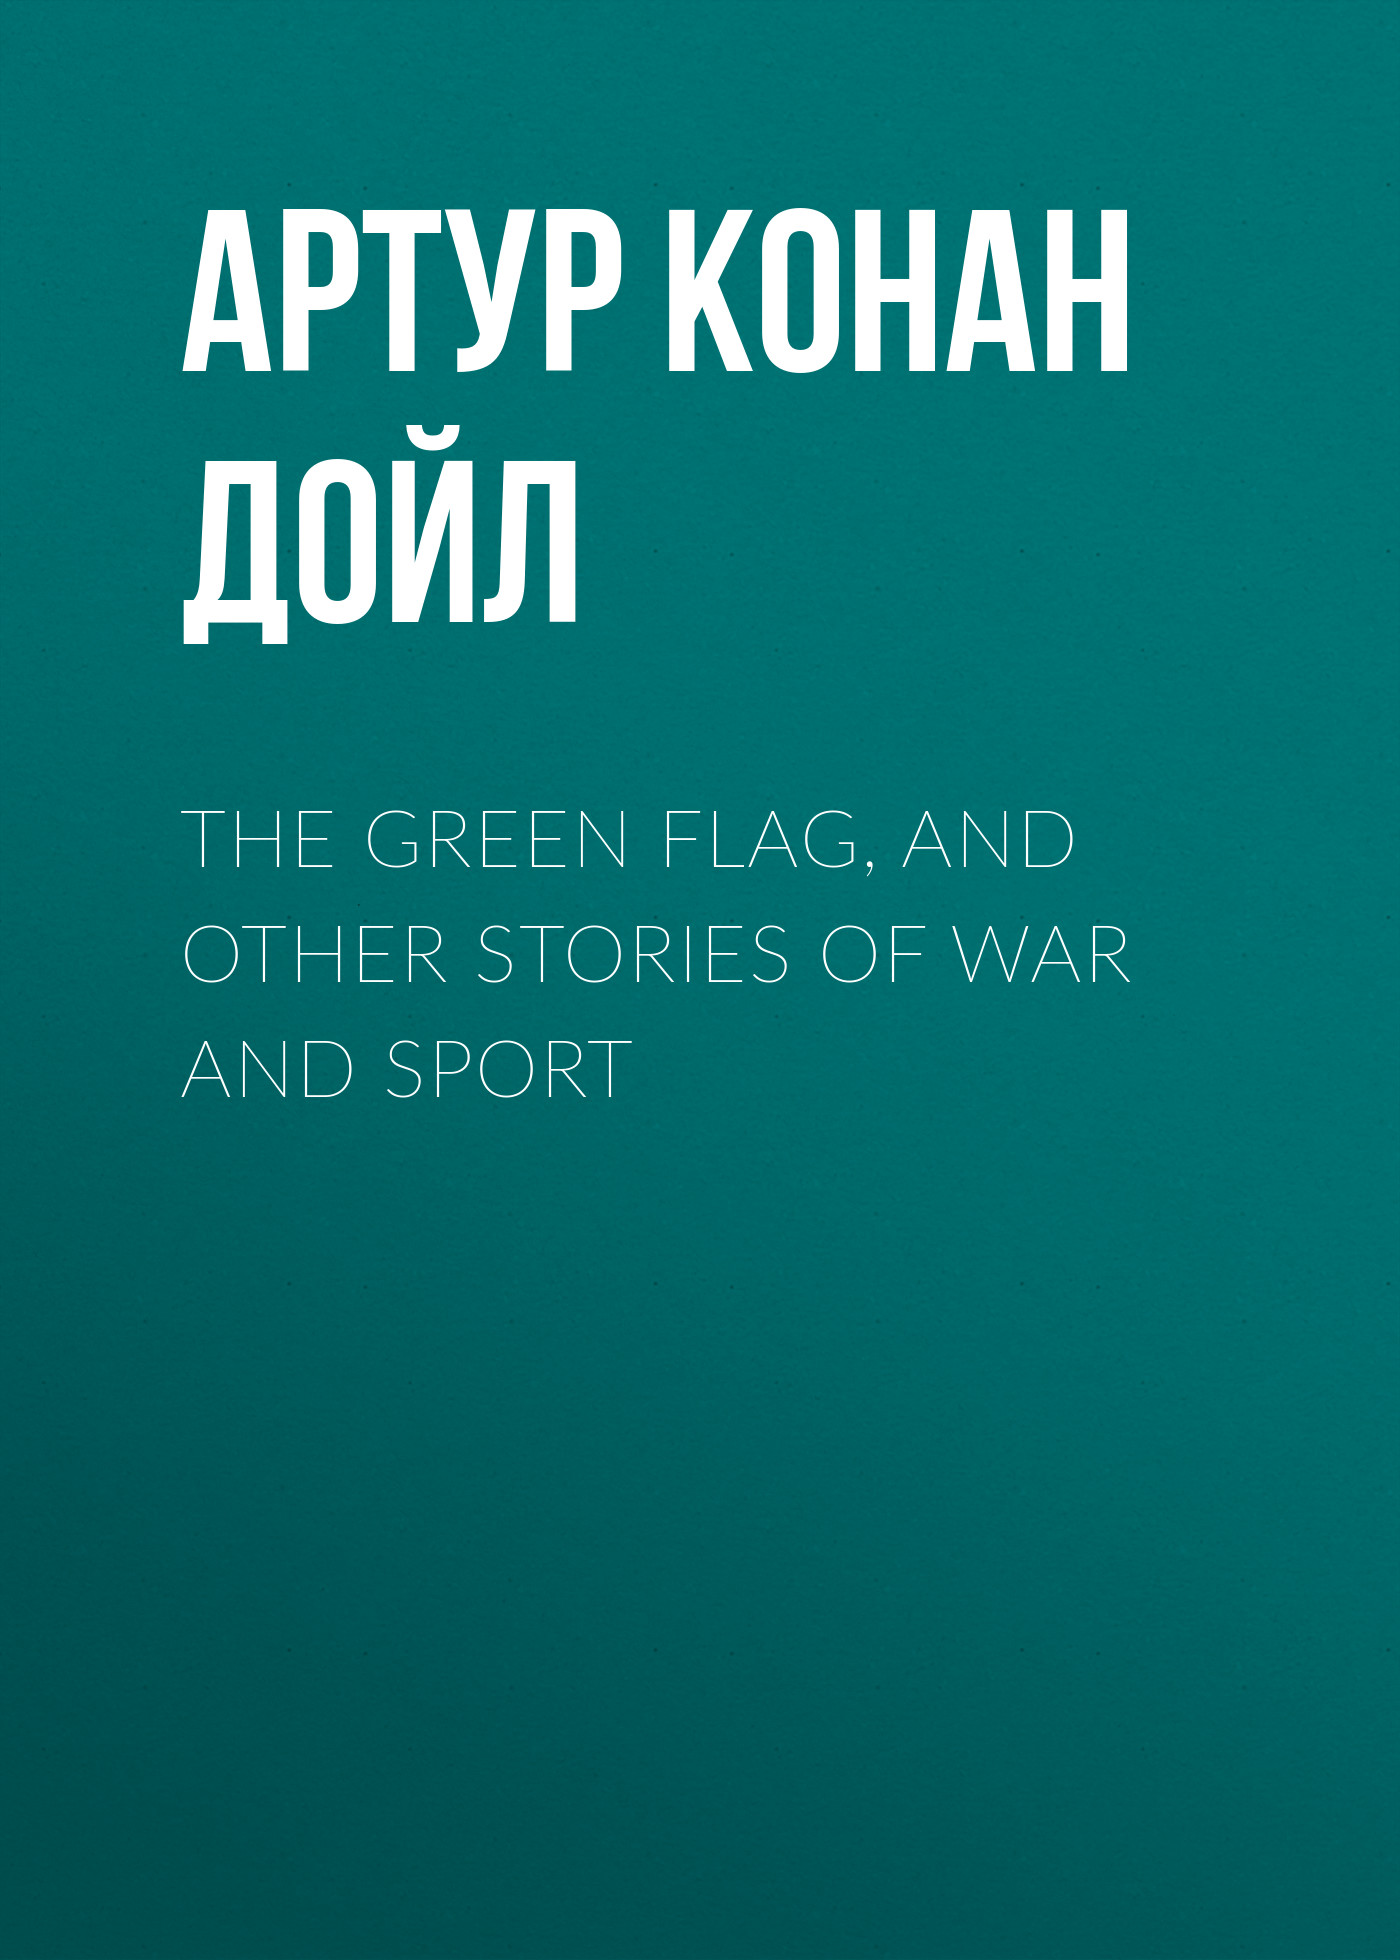 Артур Конан Дойл The Green Flag, and Other Stories of War and Sport майка классическая printio женщина